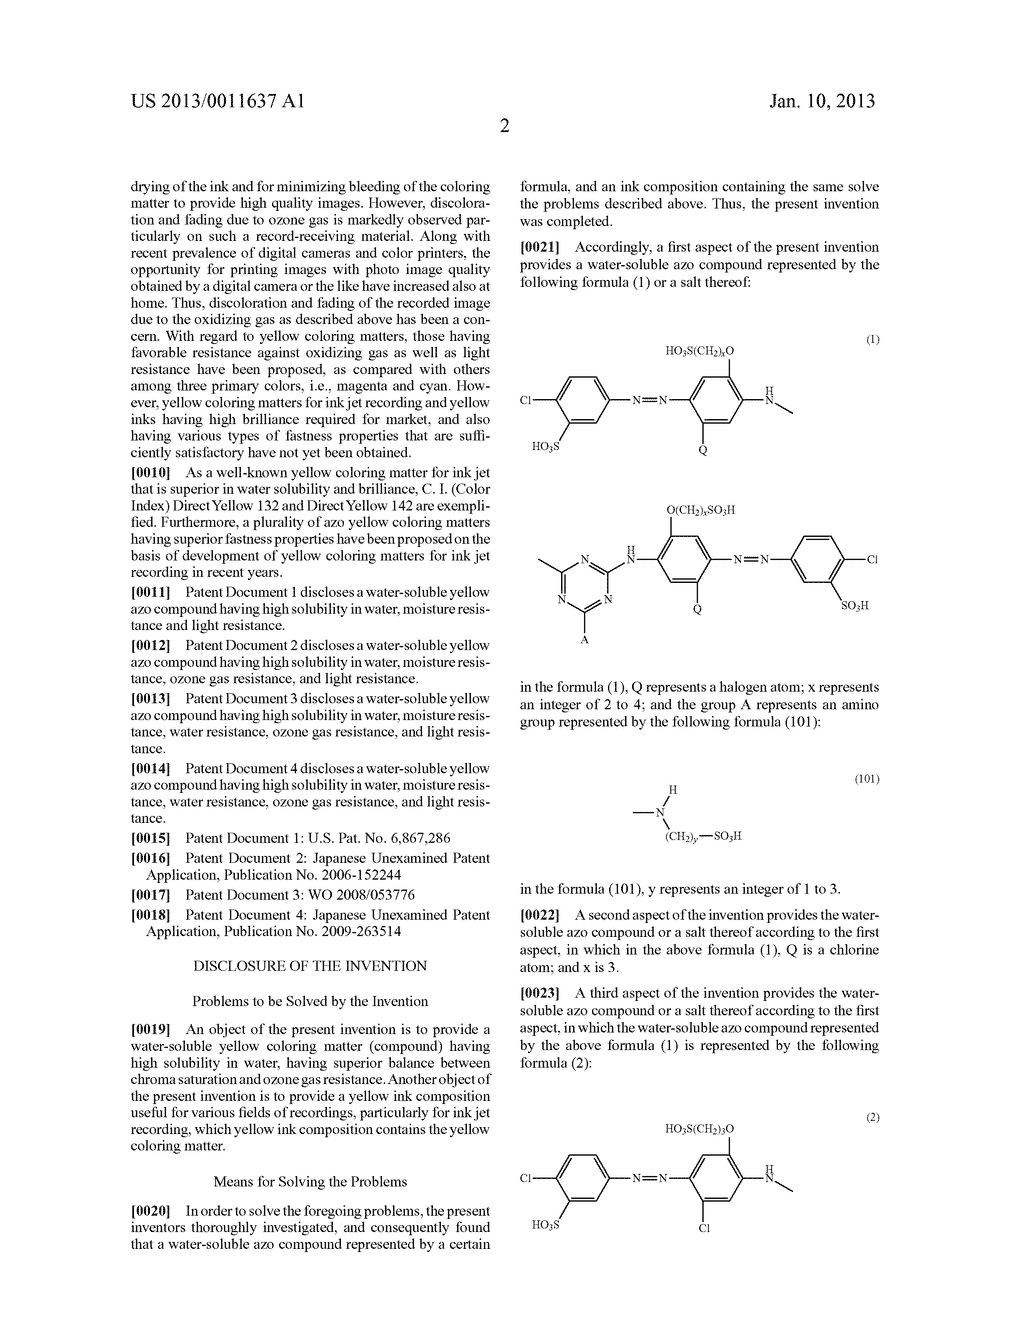 WATER-SOLUBLE AZO COMPOUND OR SALT THEREOF, INK COMPOSITION, AND COLORED     BODY - diagram, schematic, and image 03